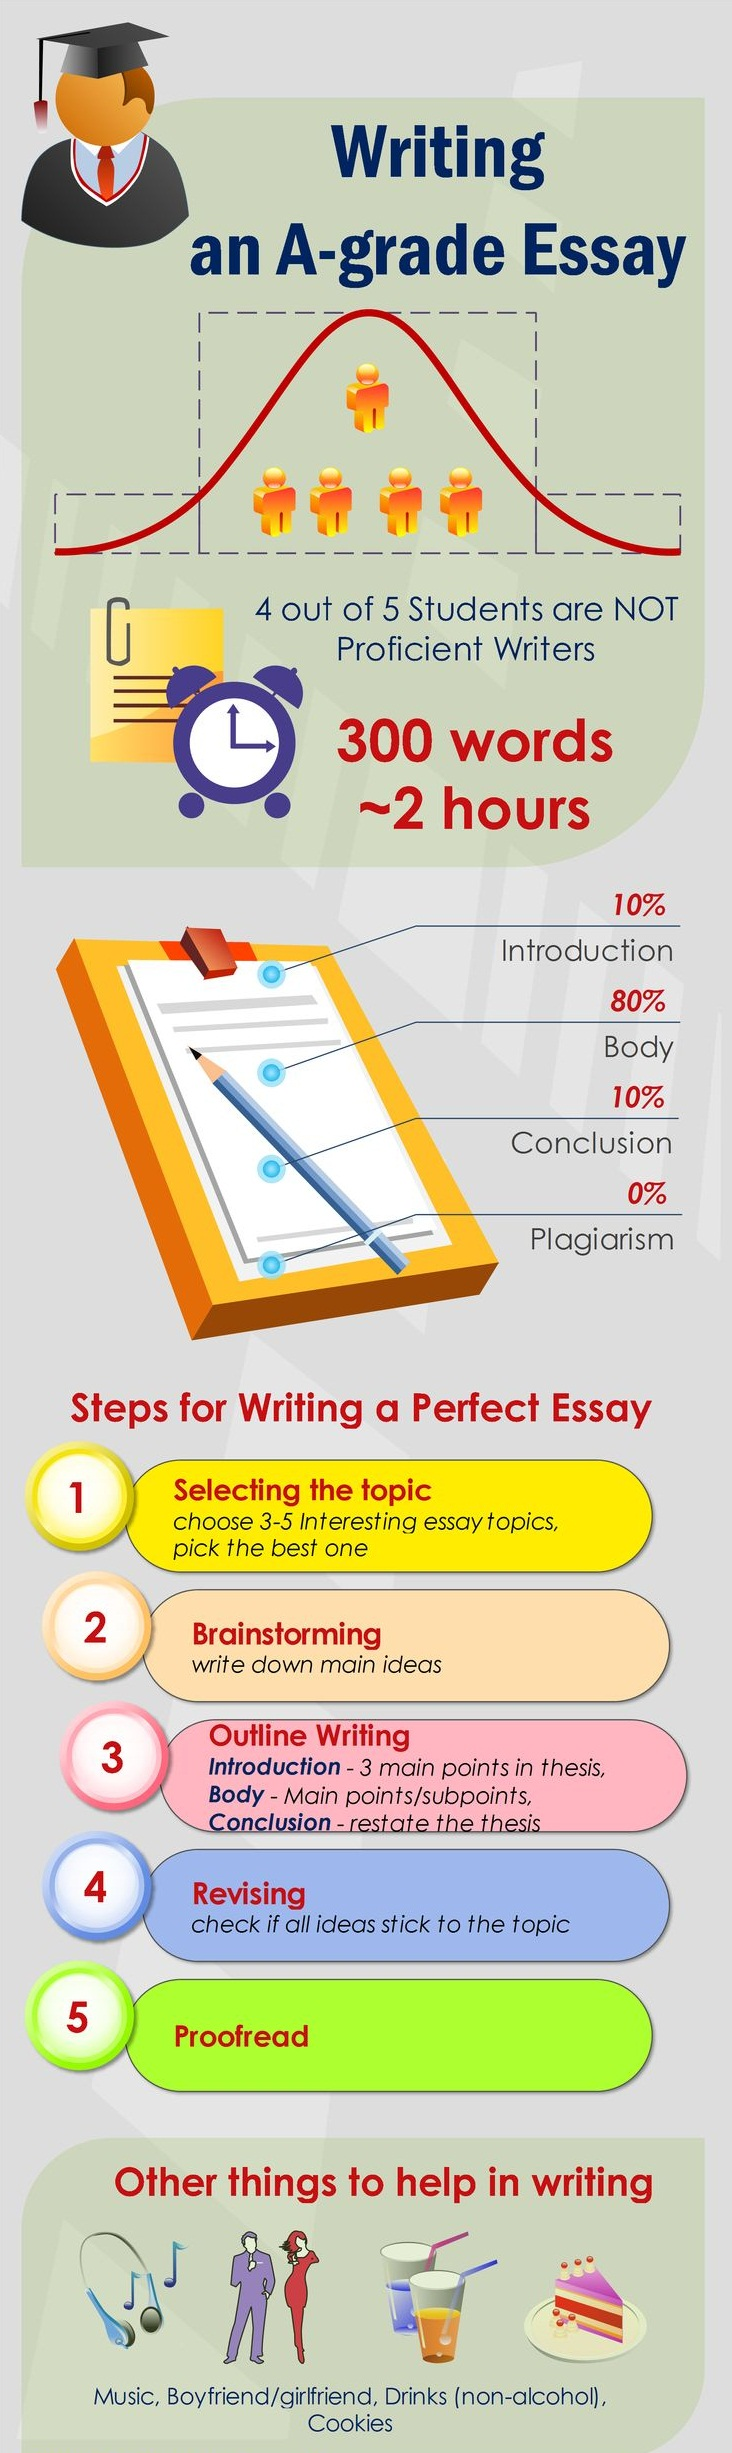 Help in writing an essay for college